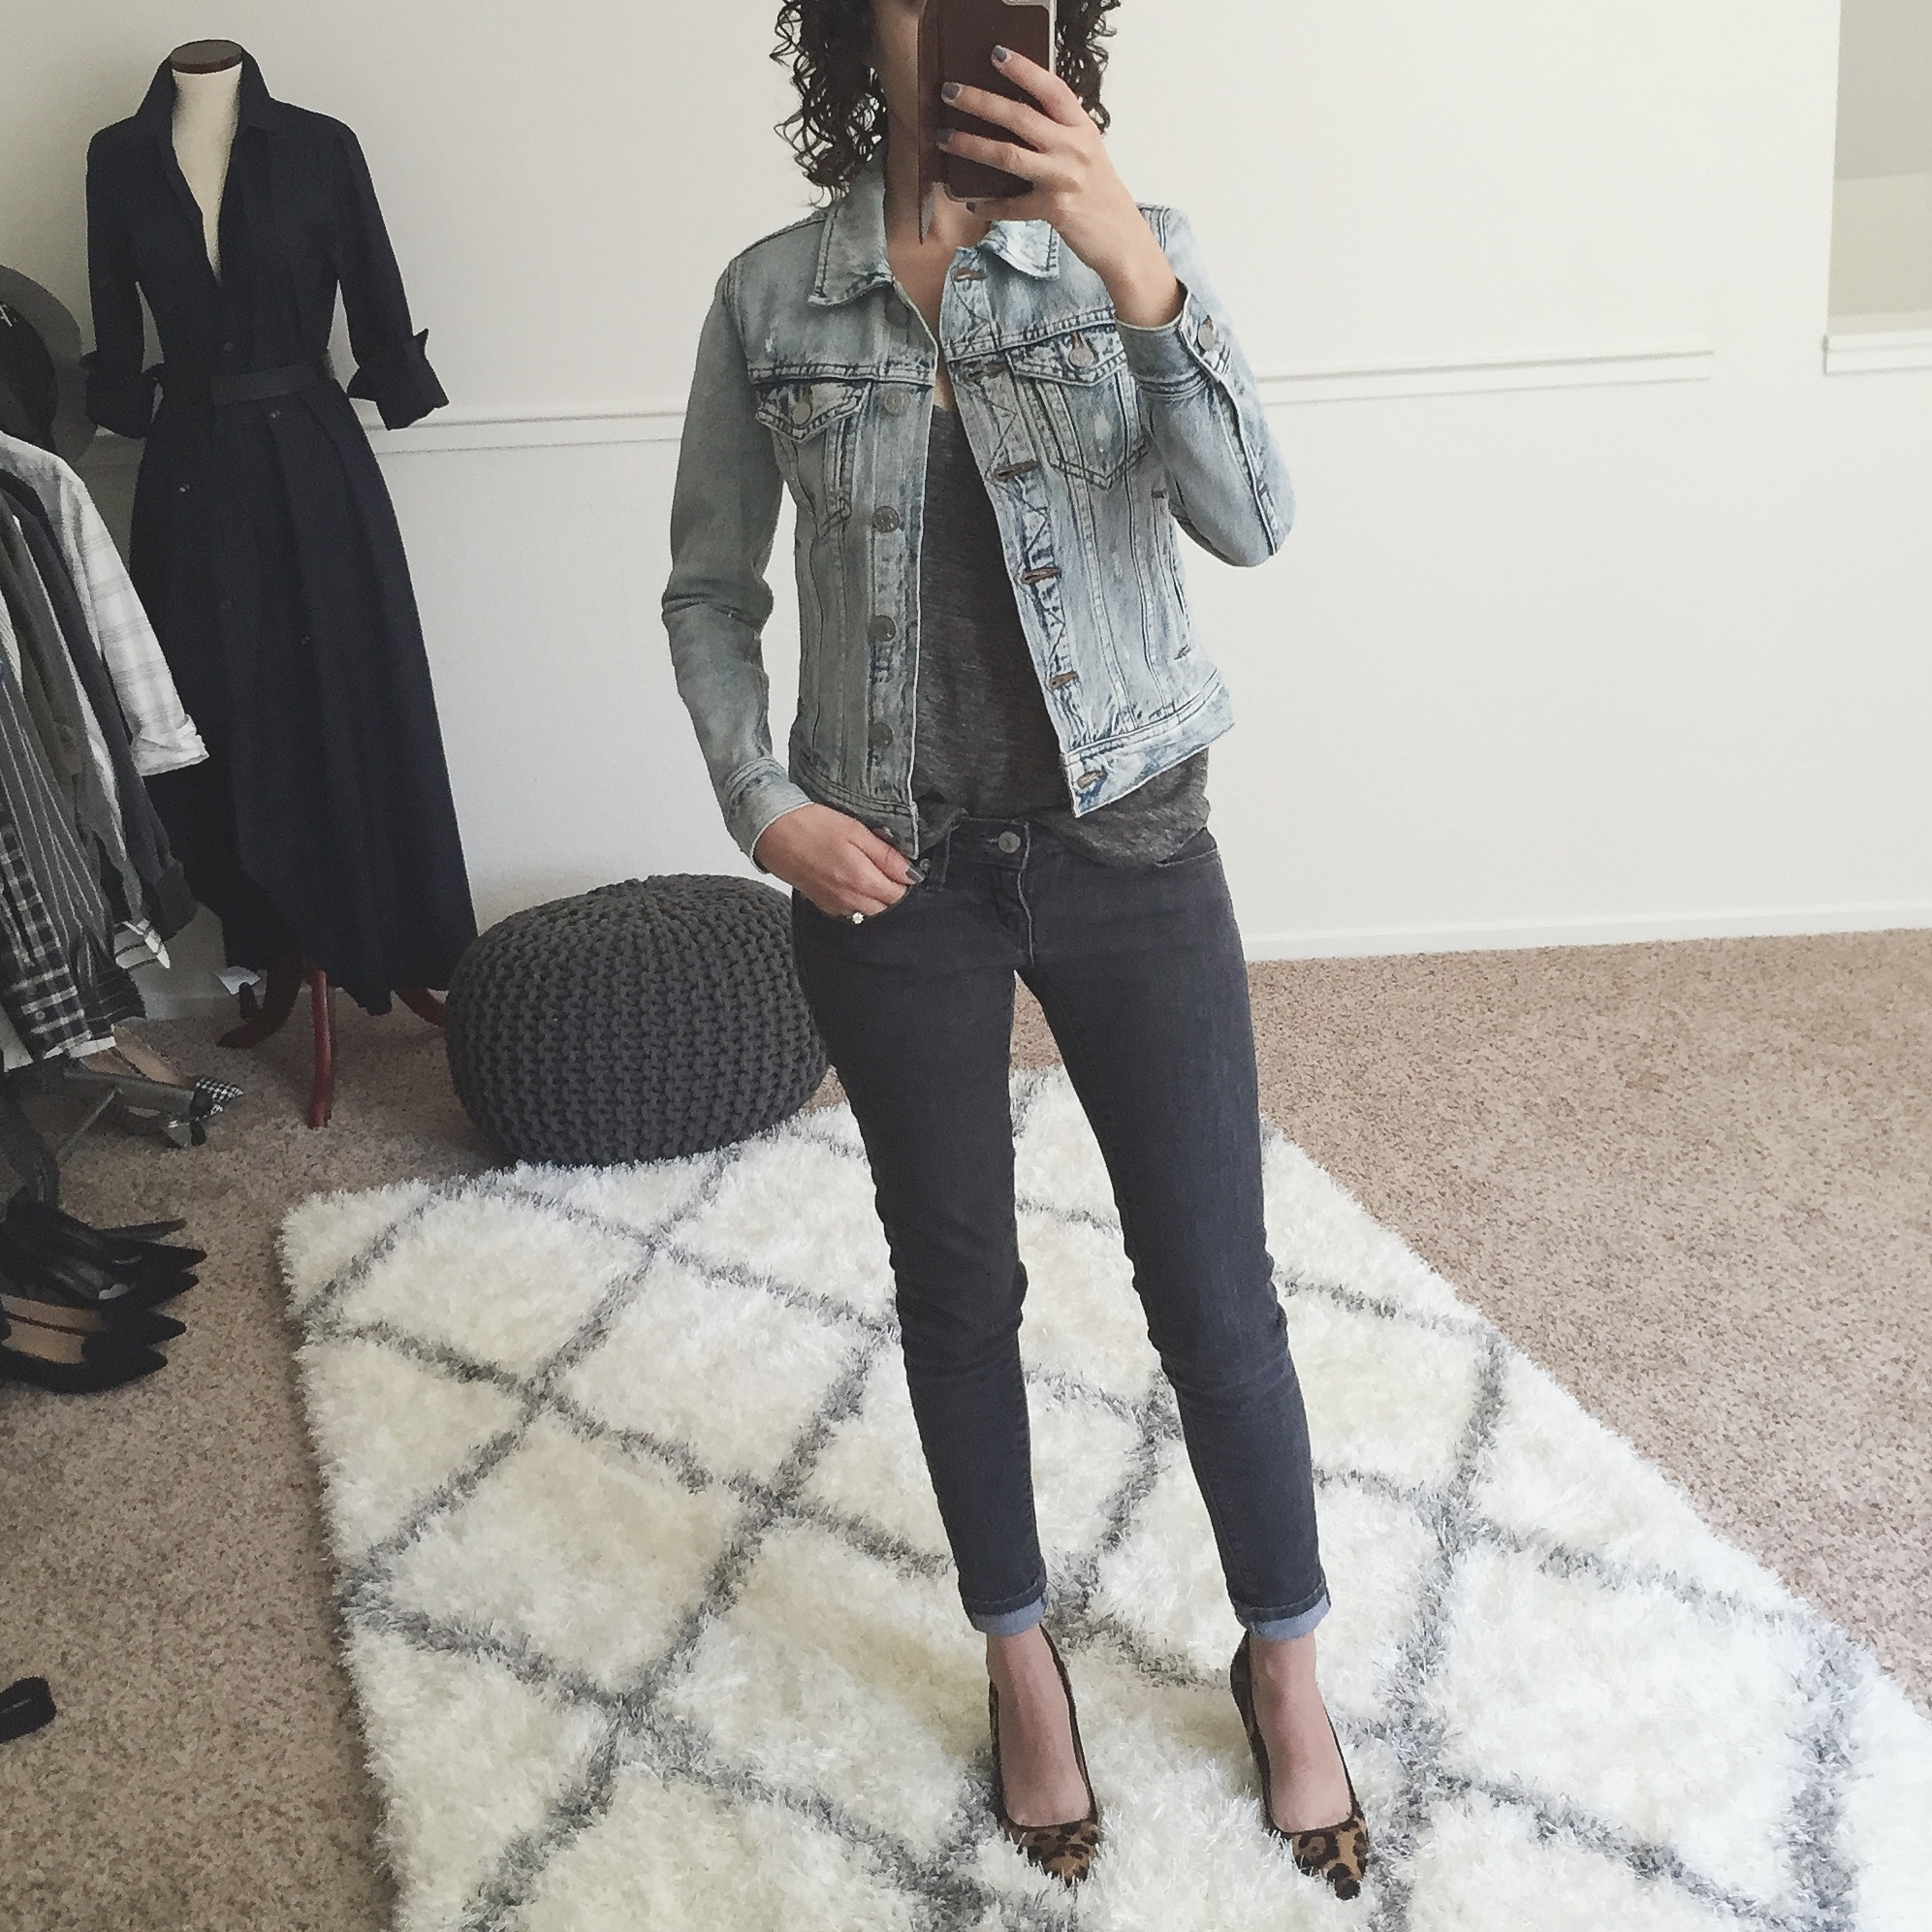 Fit Review Friday – J.Crew Denim Jackets in Size Petite XXXS (& Comparison to AEO Version)